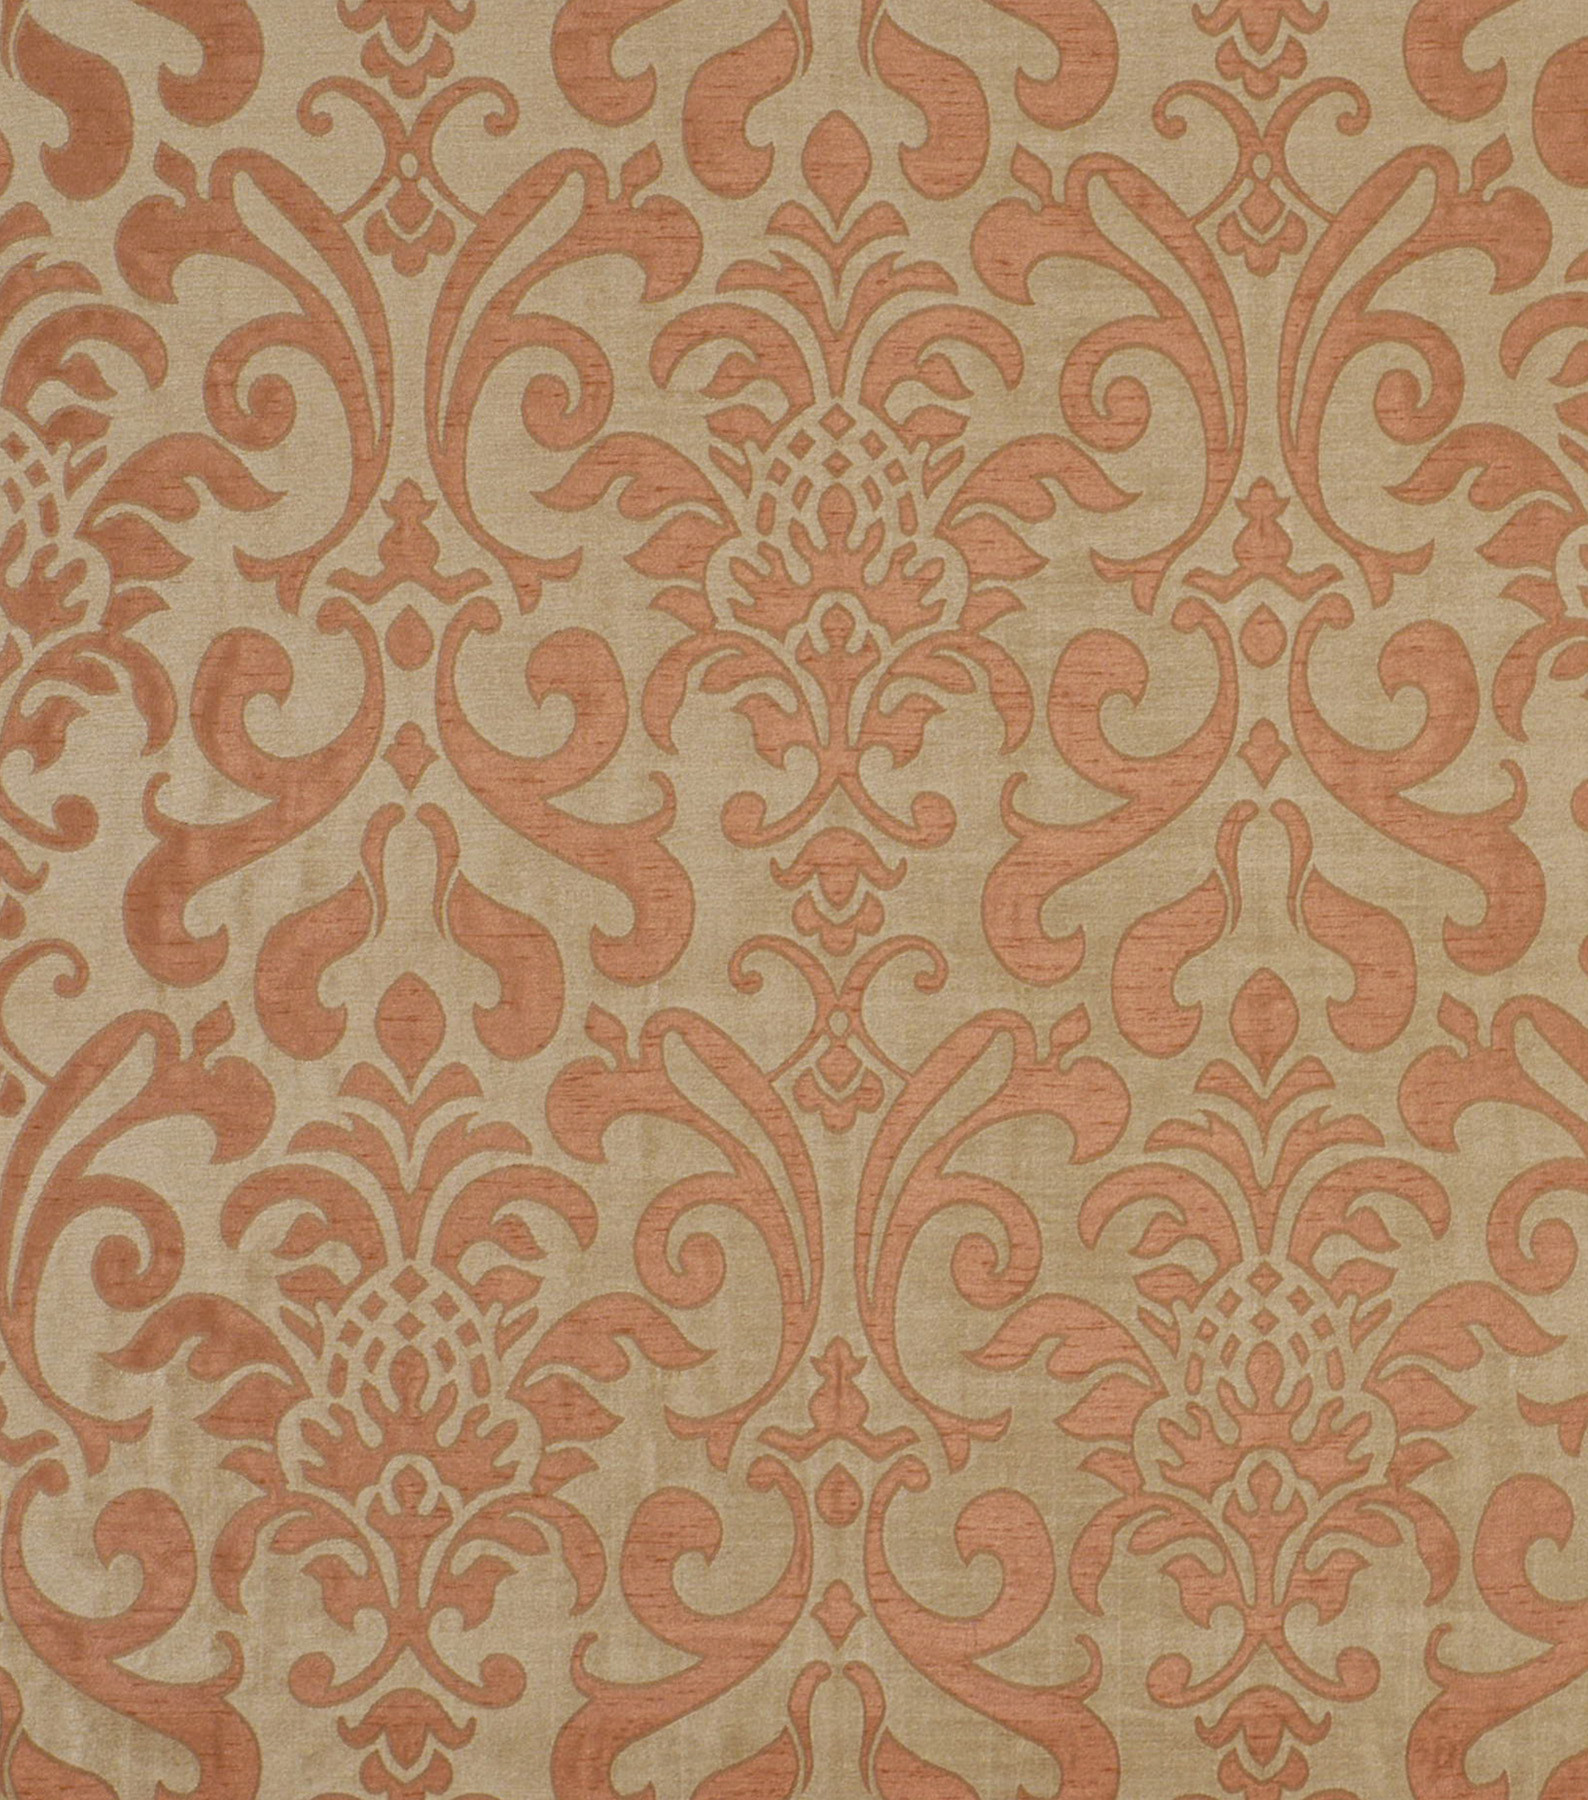 Home Decor 8\u0022x8\u0022 Fabric Swatch-Signature Series Endruschat Apricot